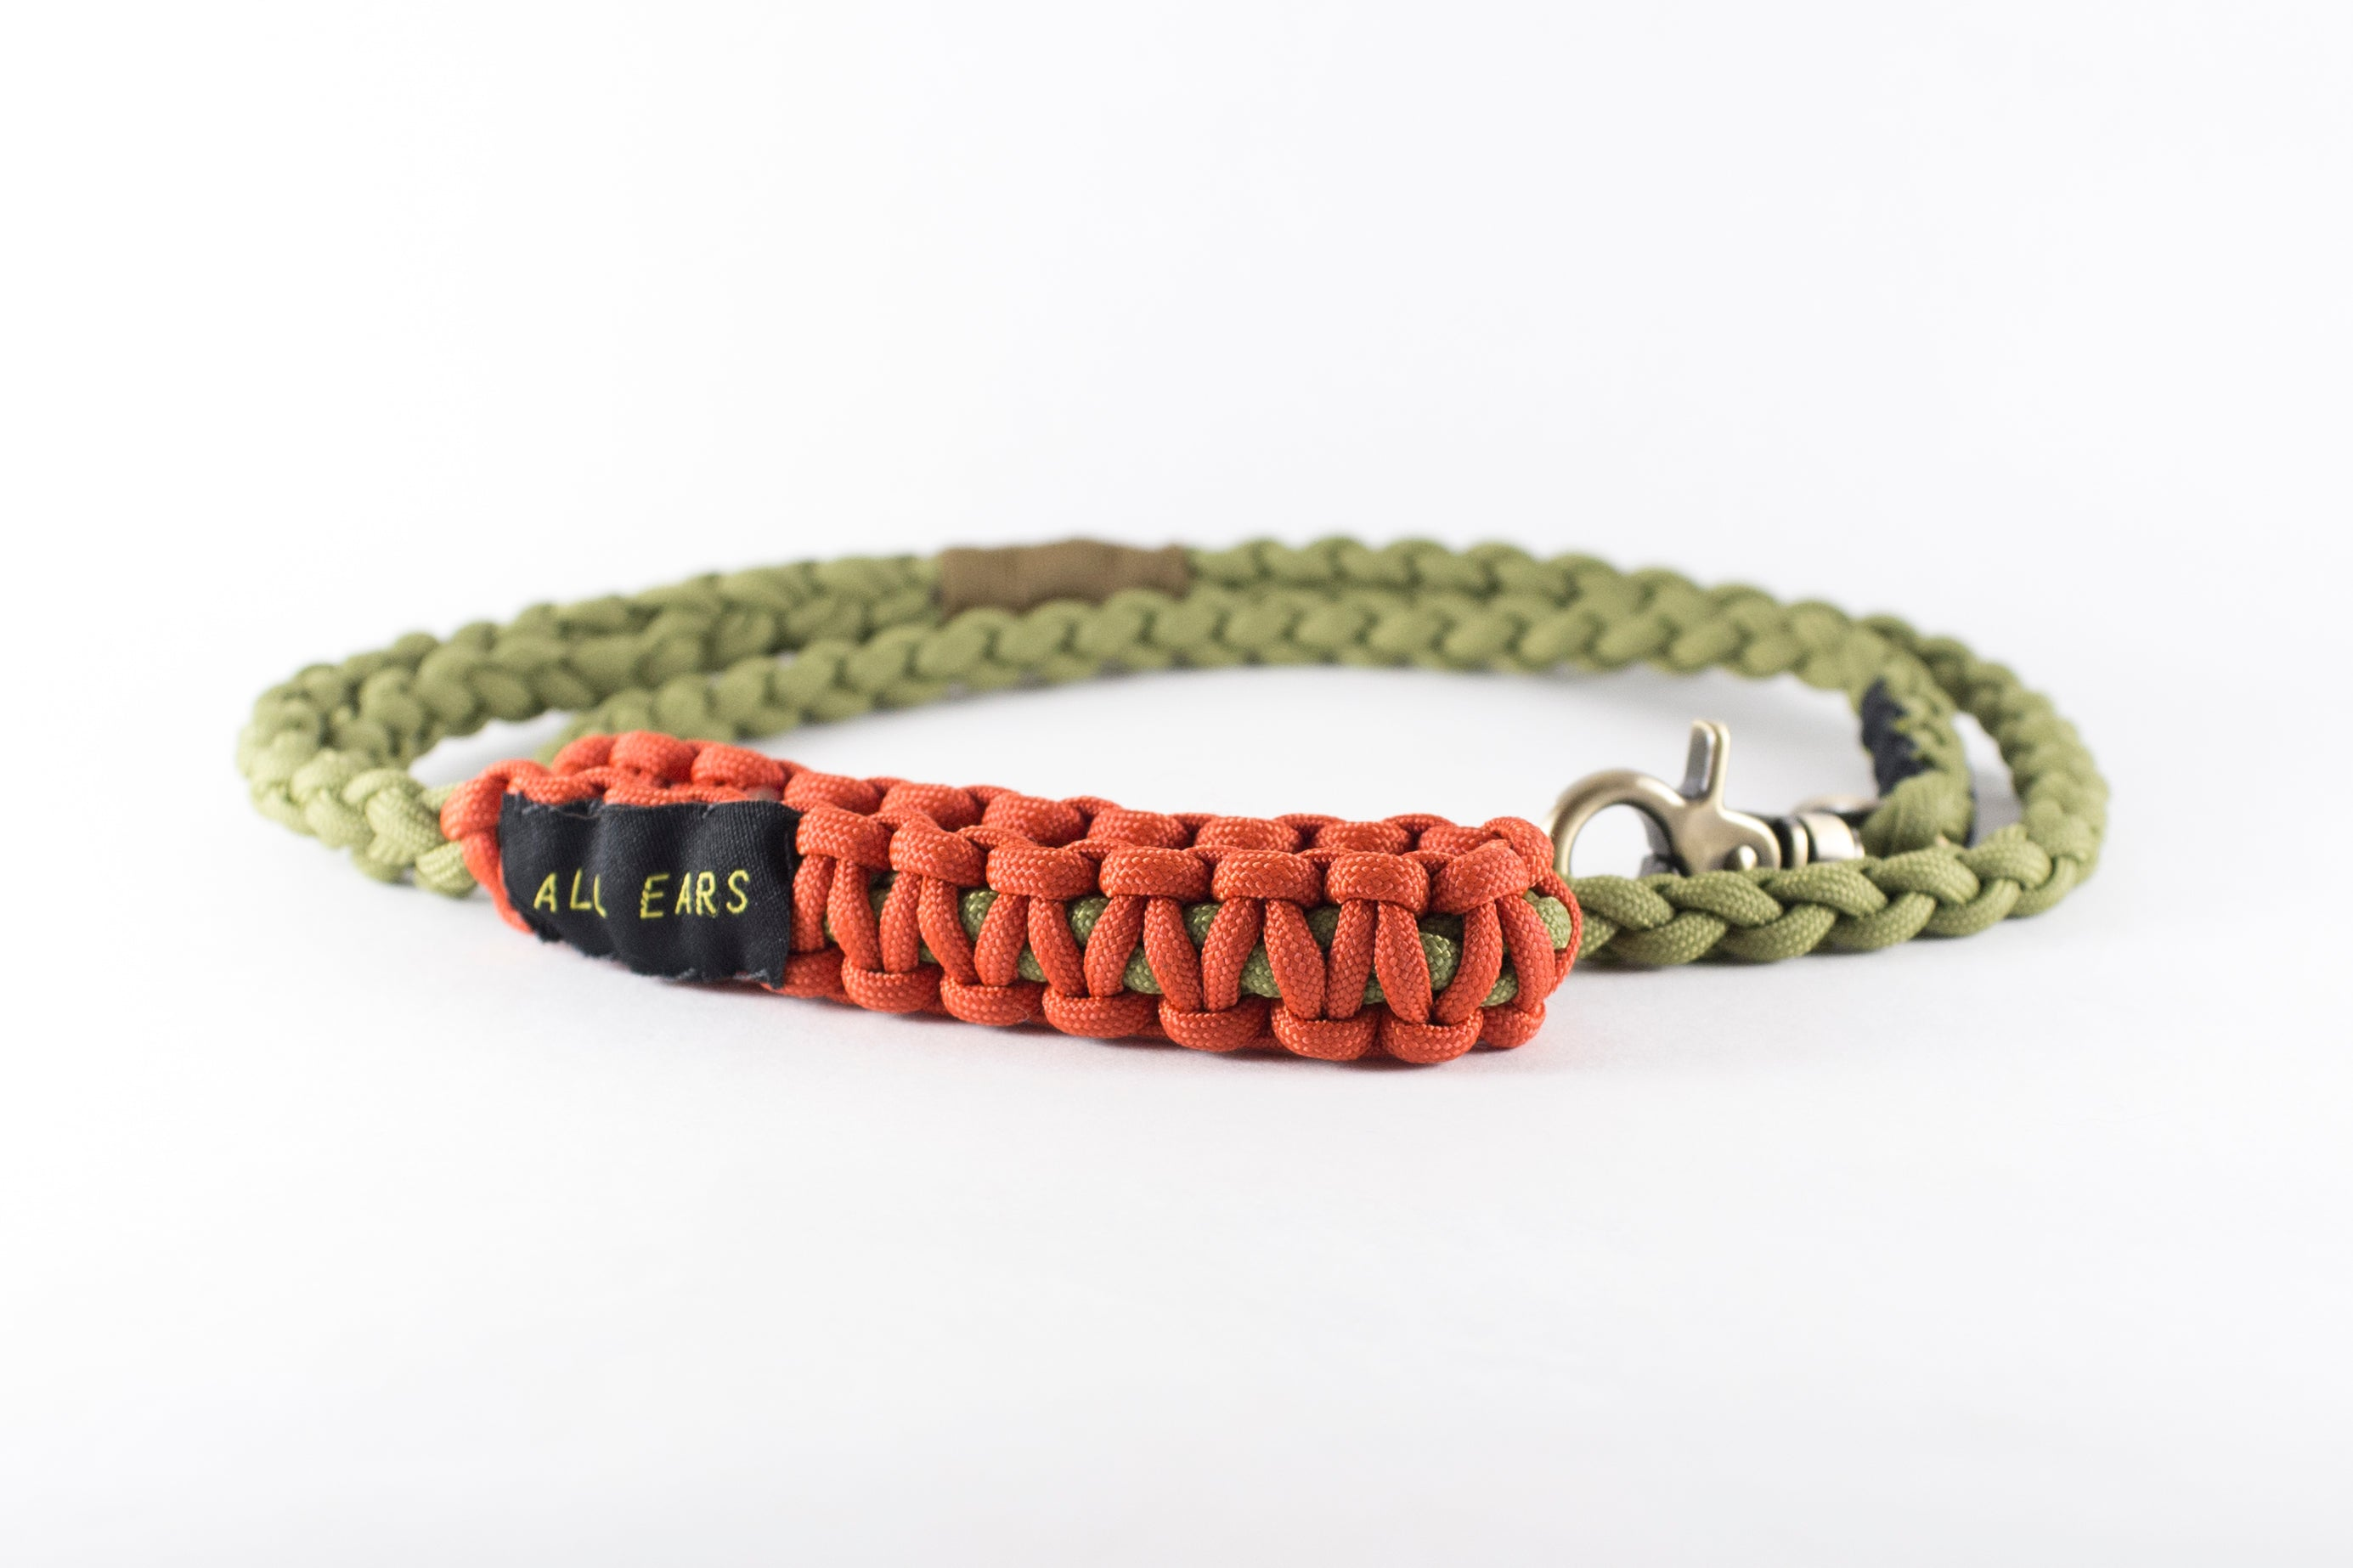 Braided Paracord 550 Leash - Moss Green